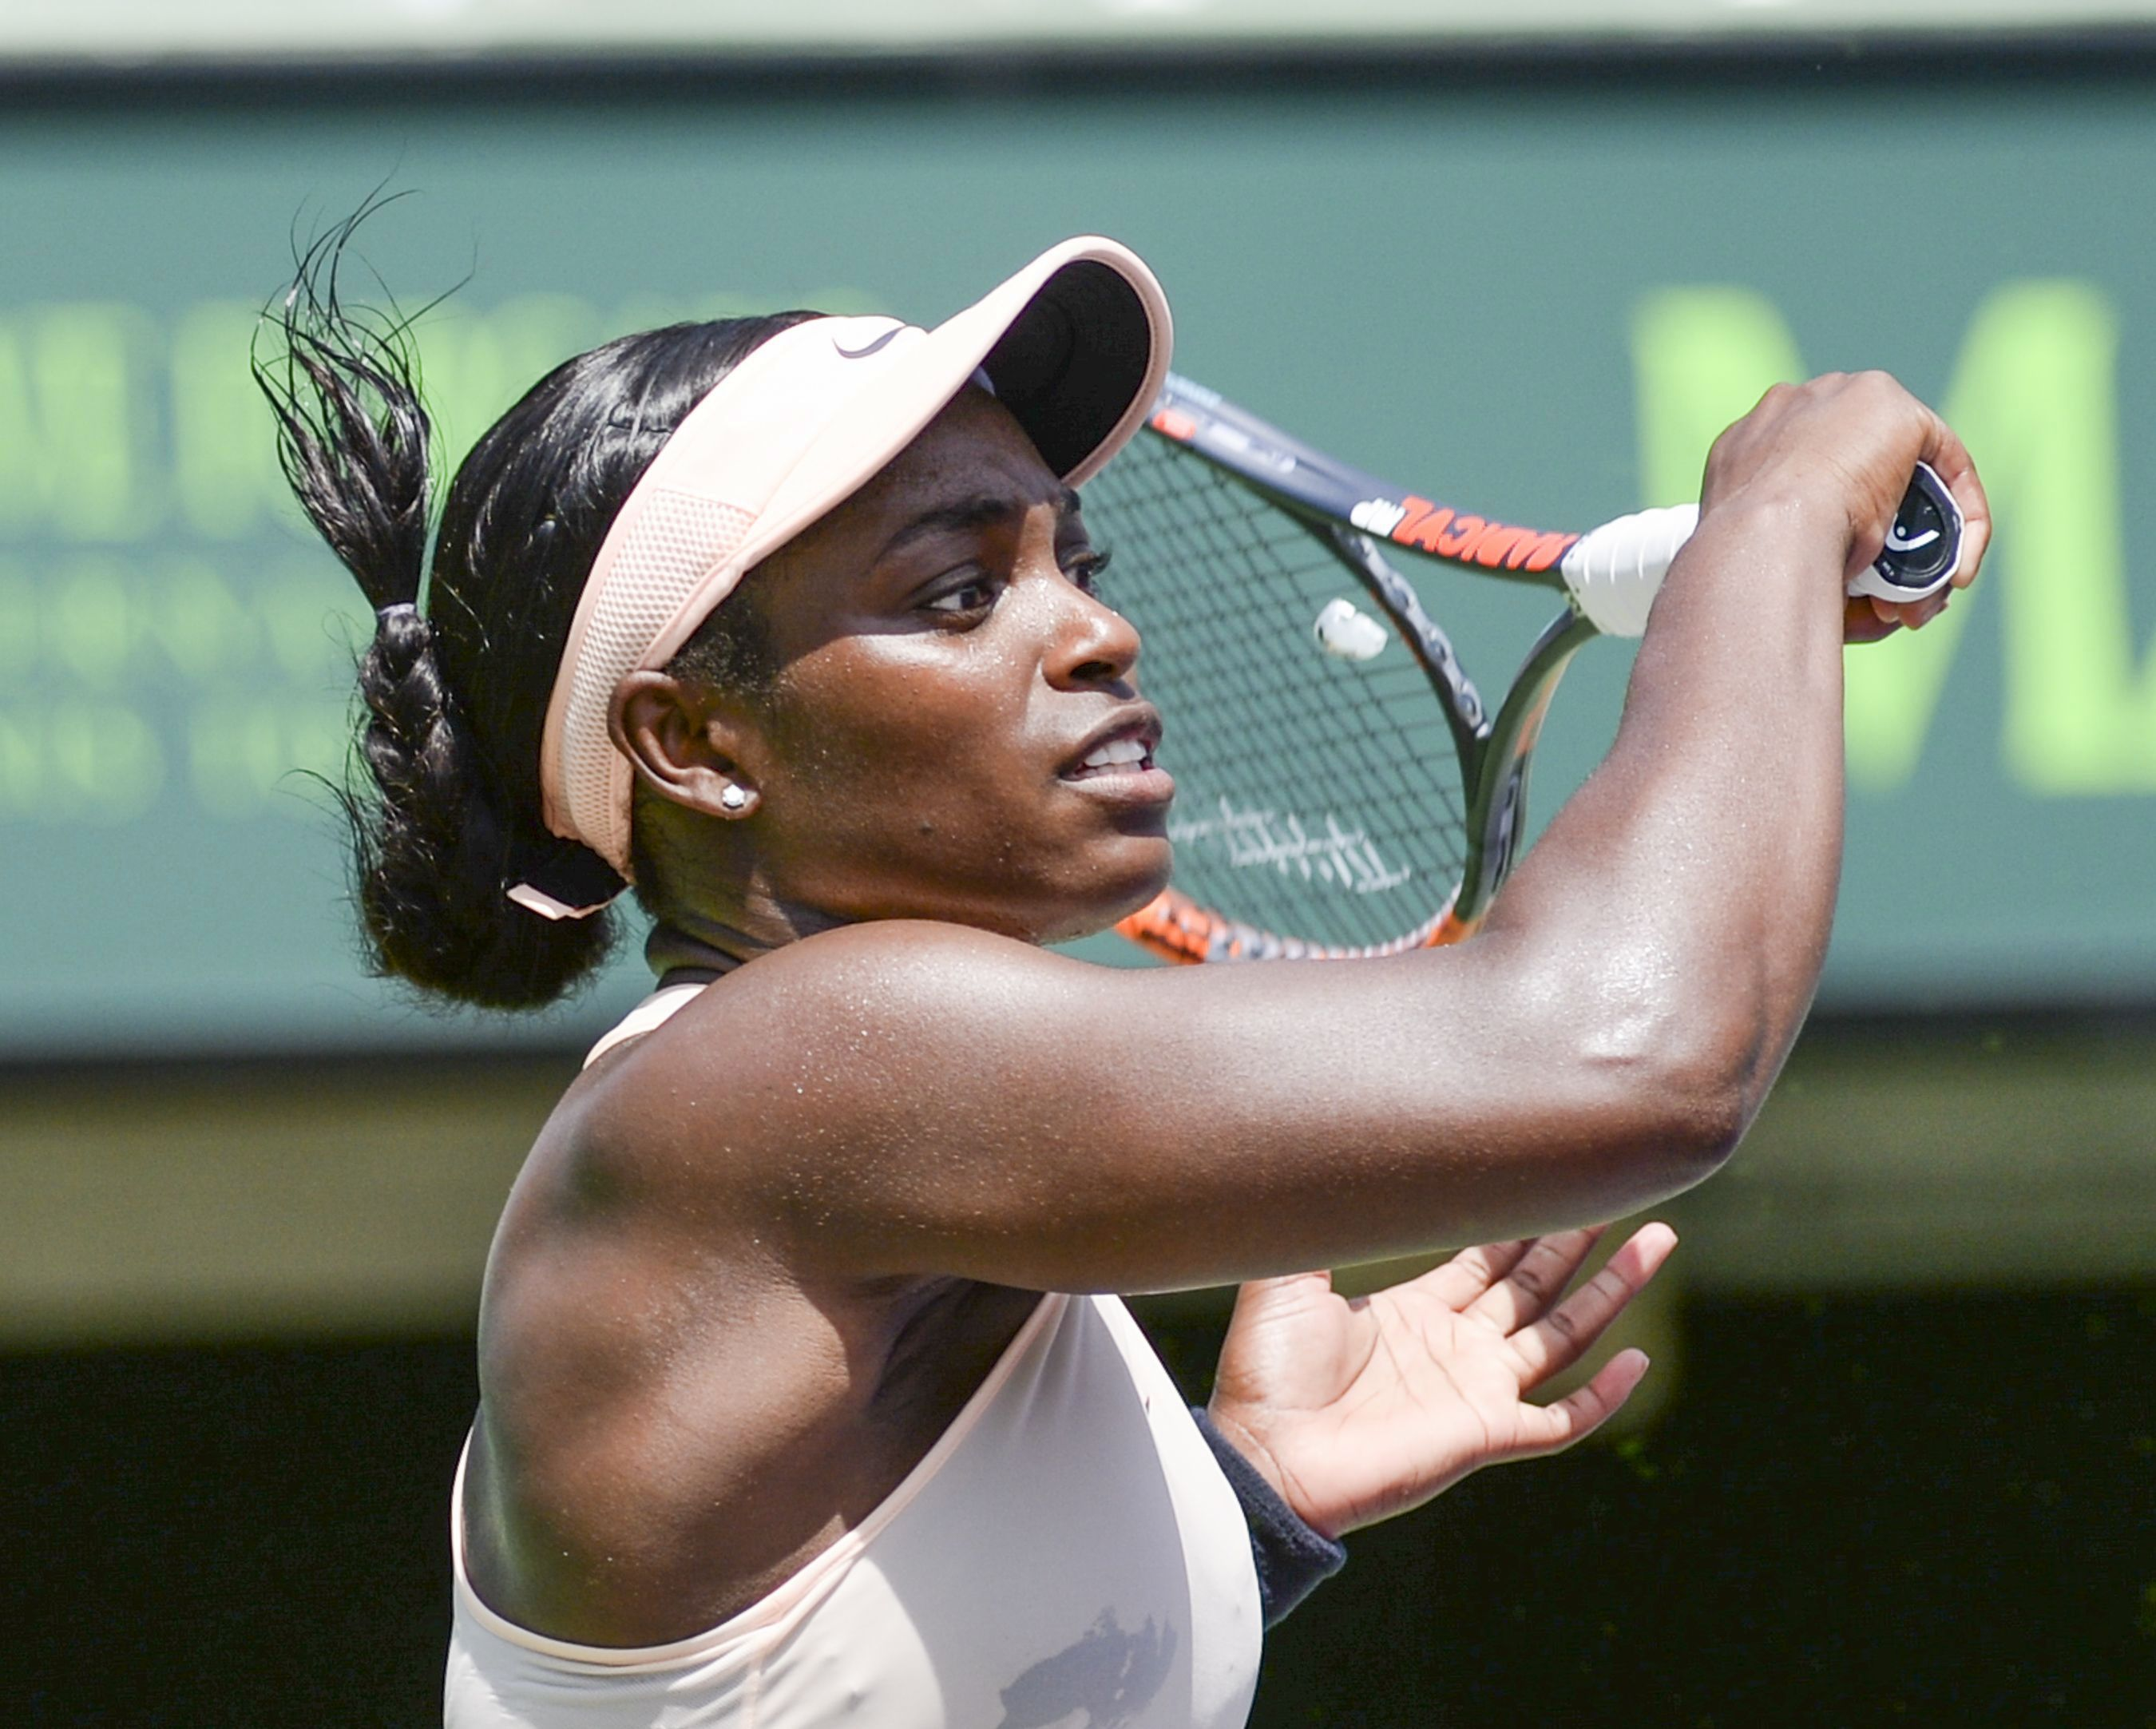 5 choses savoir sur sloane stephens titr e miami wta tennis. Black Bedroom Furniture Sets. Home Design Ideas